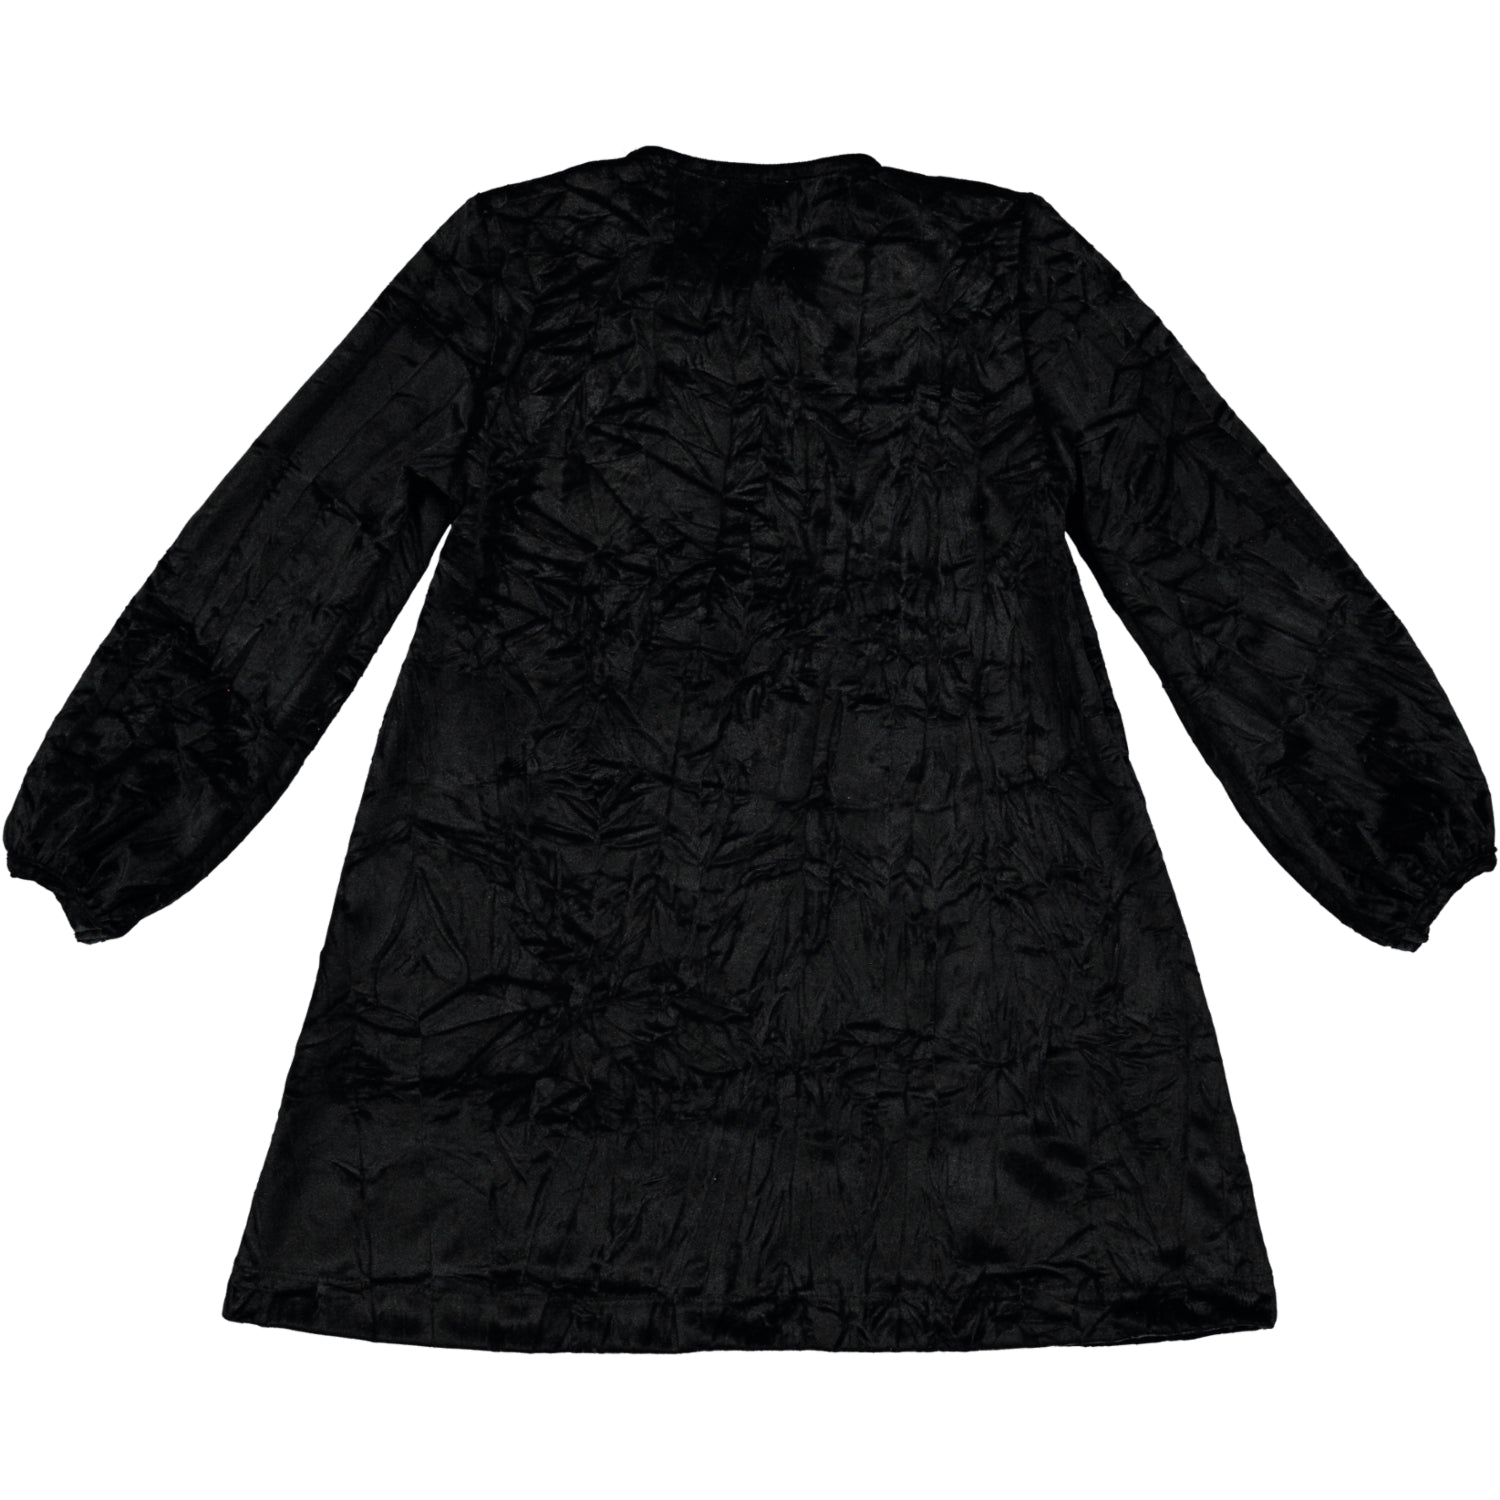 Load image into Gallery viewer, Coco Au Lait BLACK VELVET DRESS BABY Dress Caviar